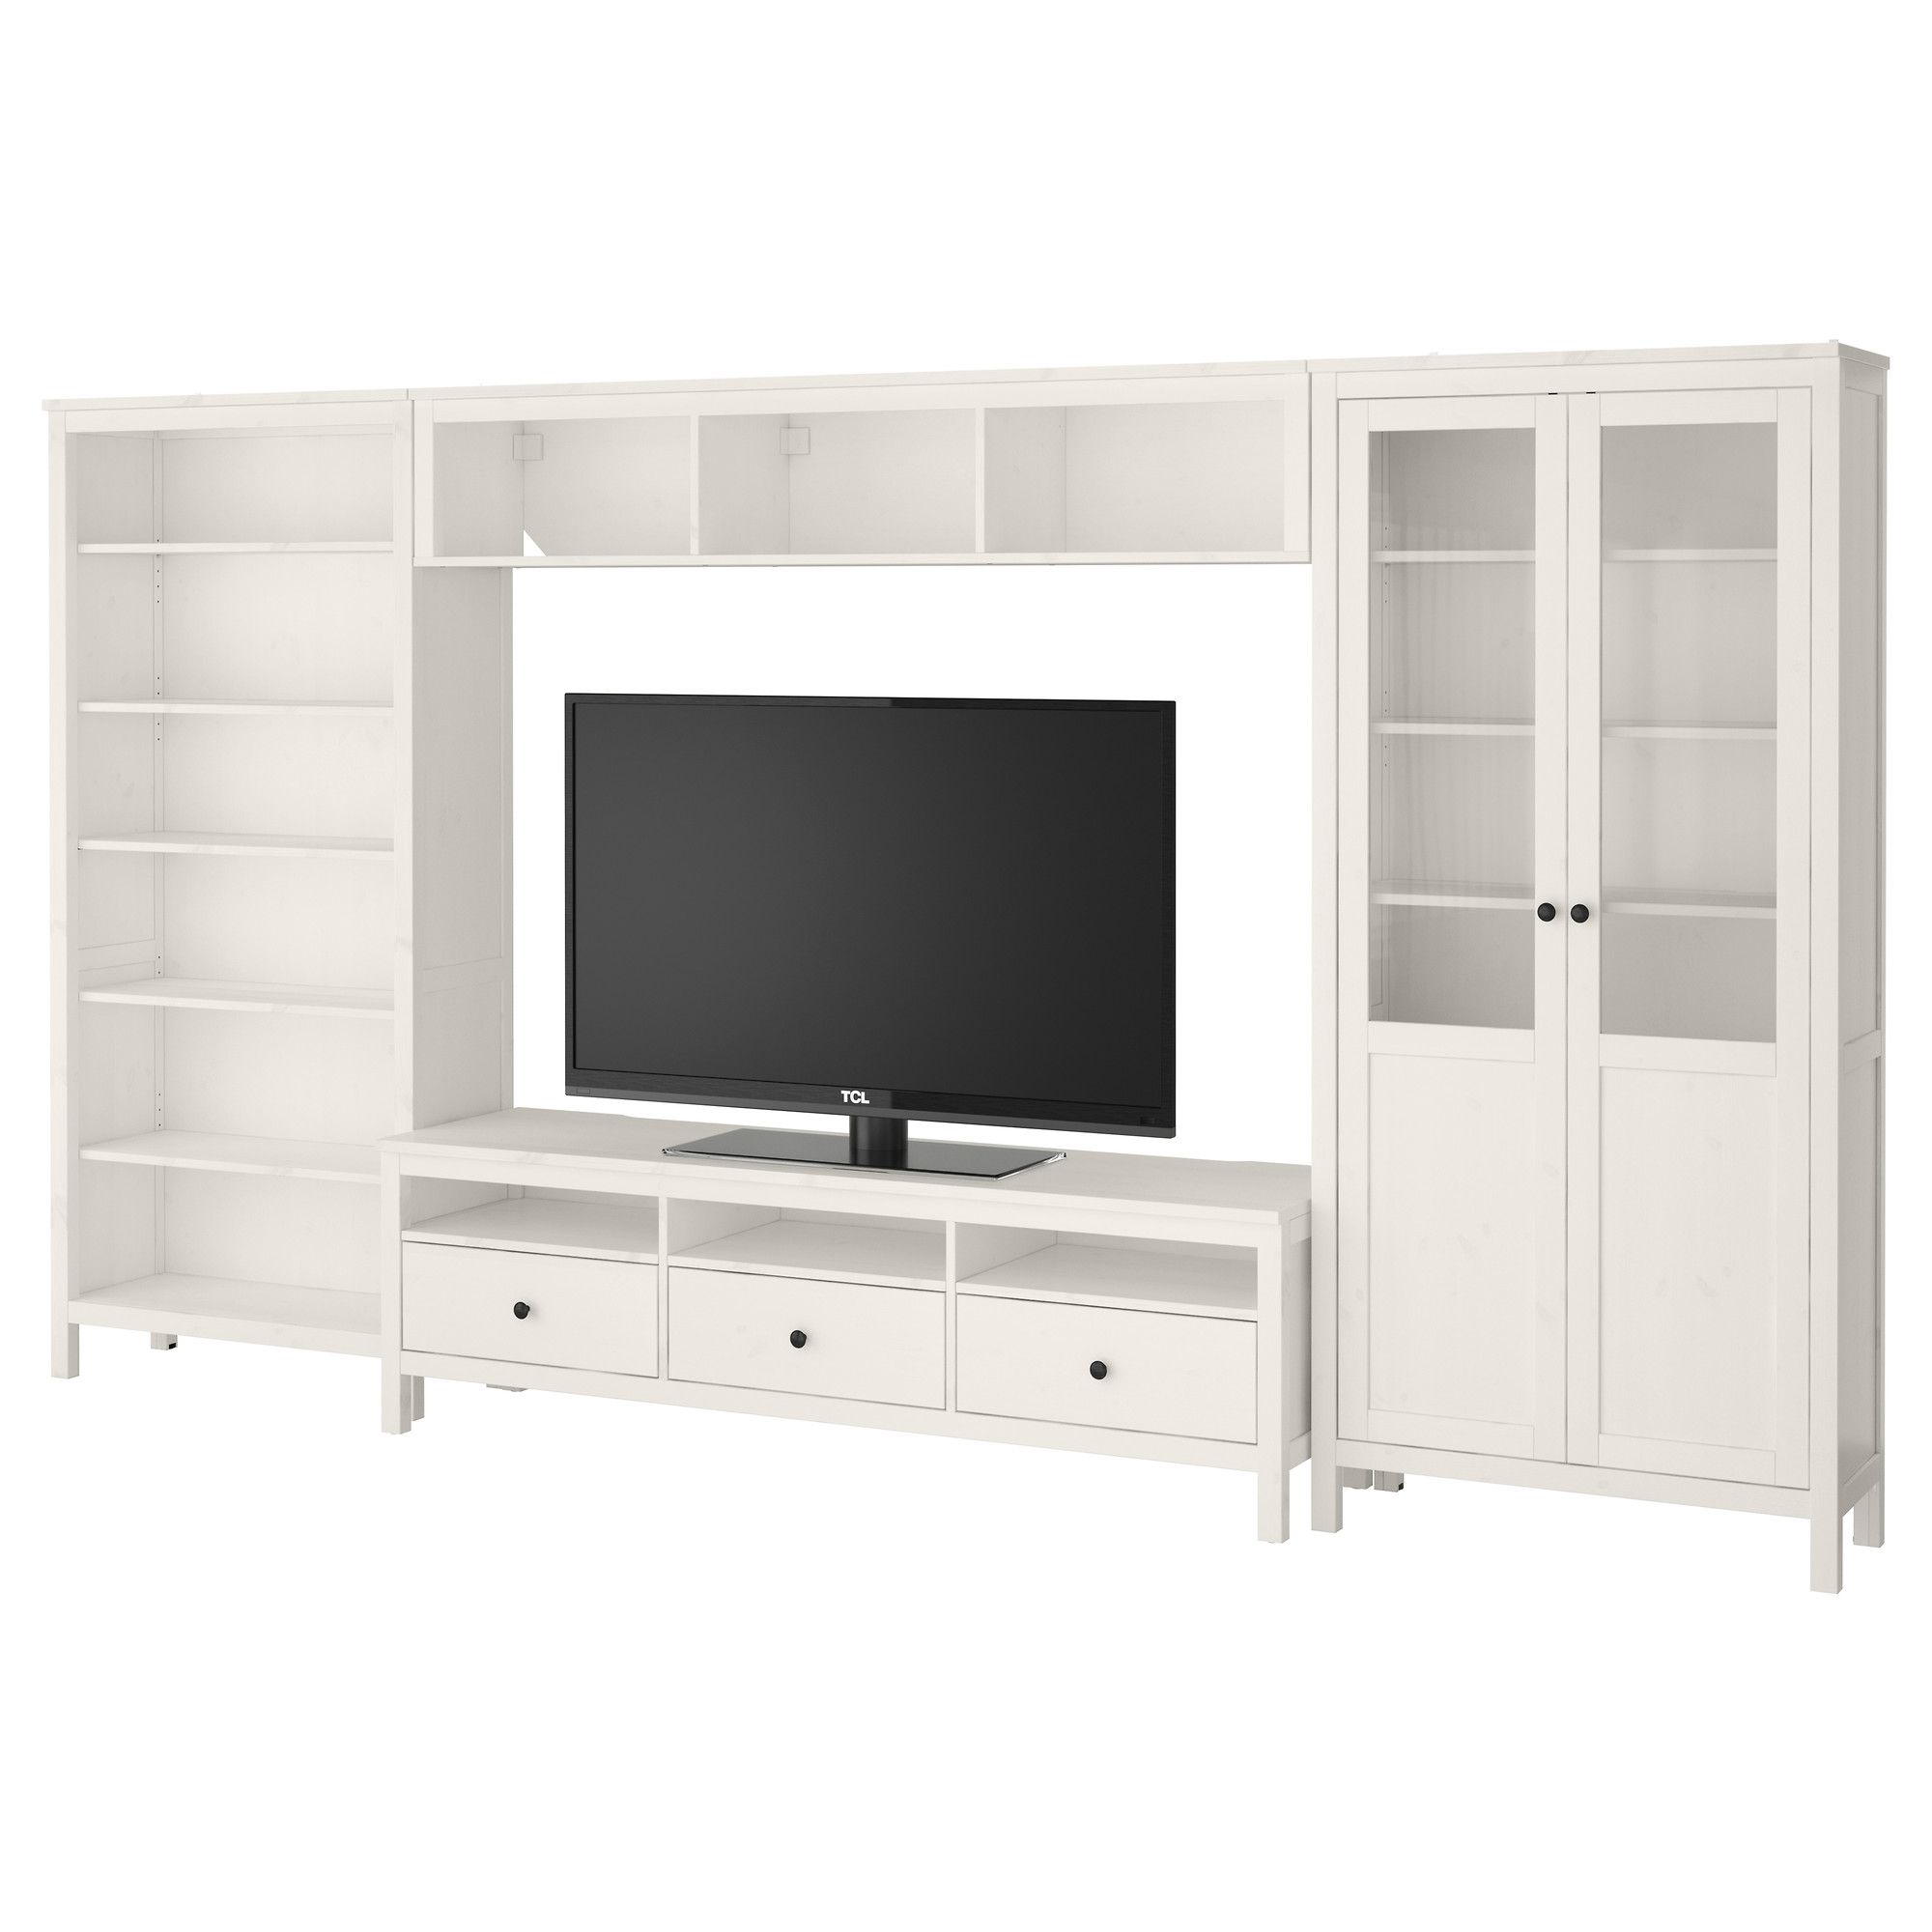 hemnes tv storage combination - white stain - ikea | for the home ... - Hemnes Wohnideen